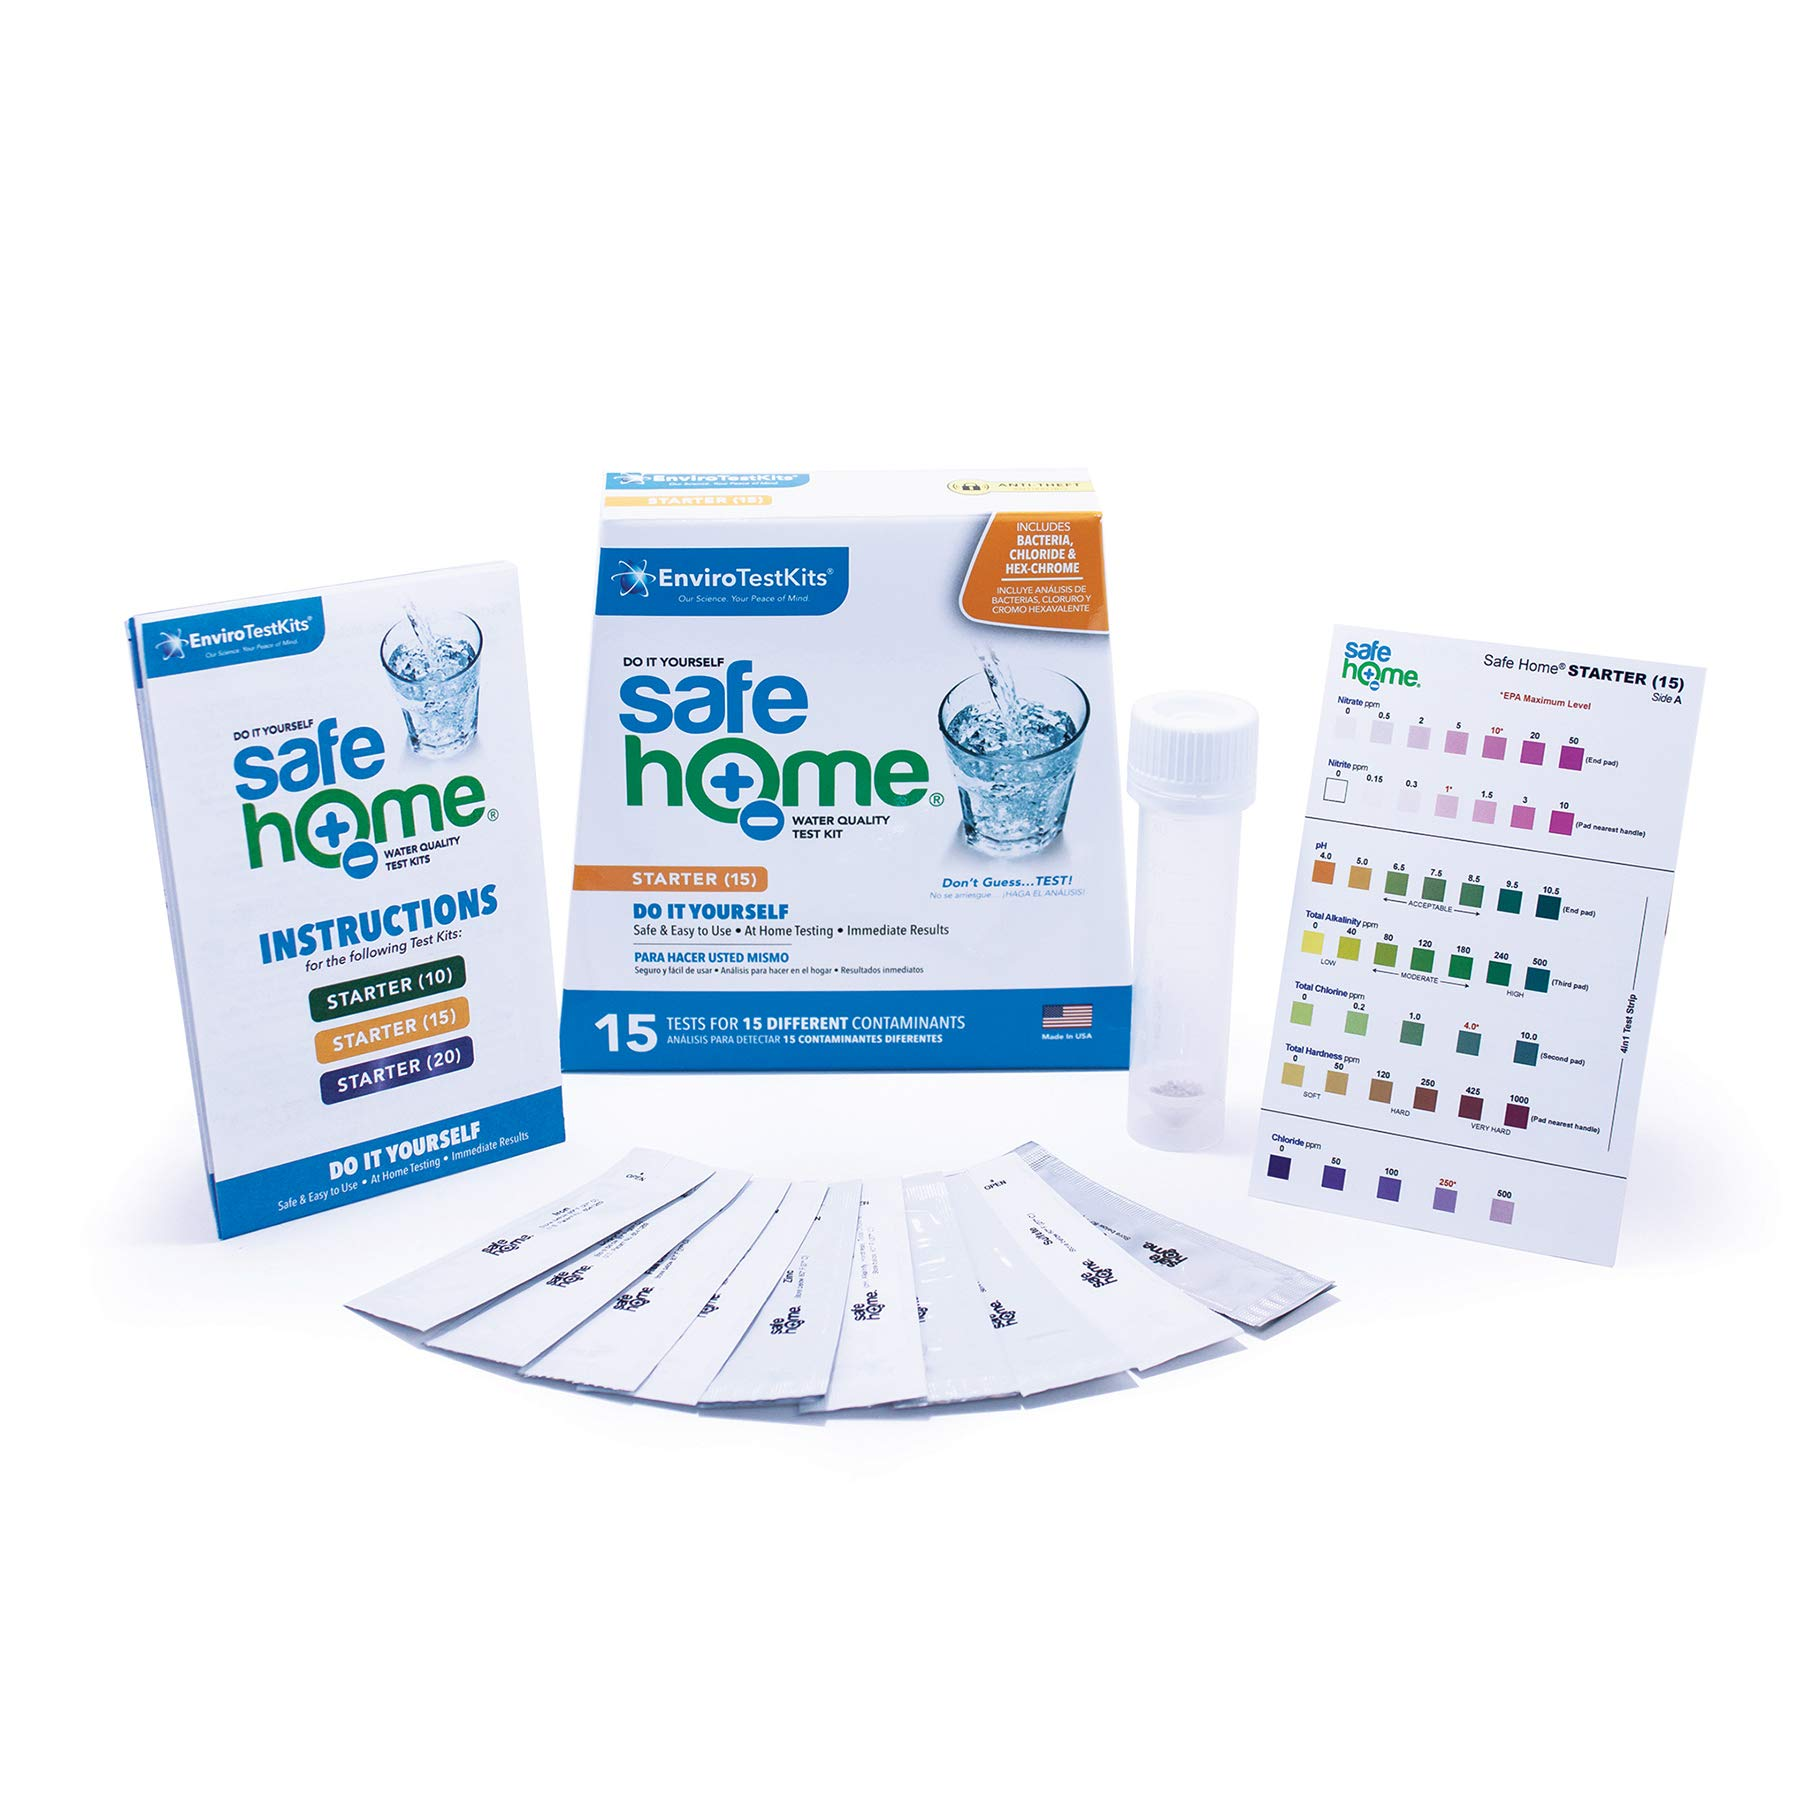 Safe Home STARTER-15 Water Quality Test Kit - (DIY Testing for 15 Different Contaminants: Bacteria, Nitrates, Hex-Chrome, TDS, Zinc, Chlorine, Copper, pH, Iron, Sulfate, Chloride & More) by Safe Home